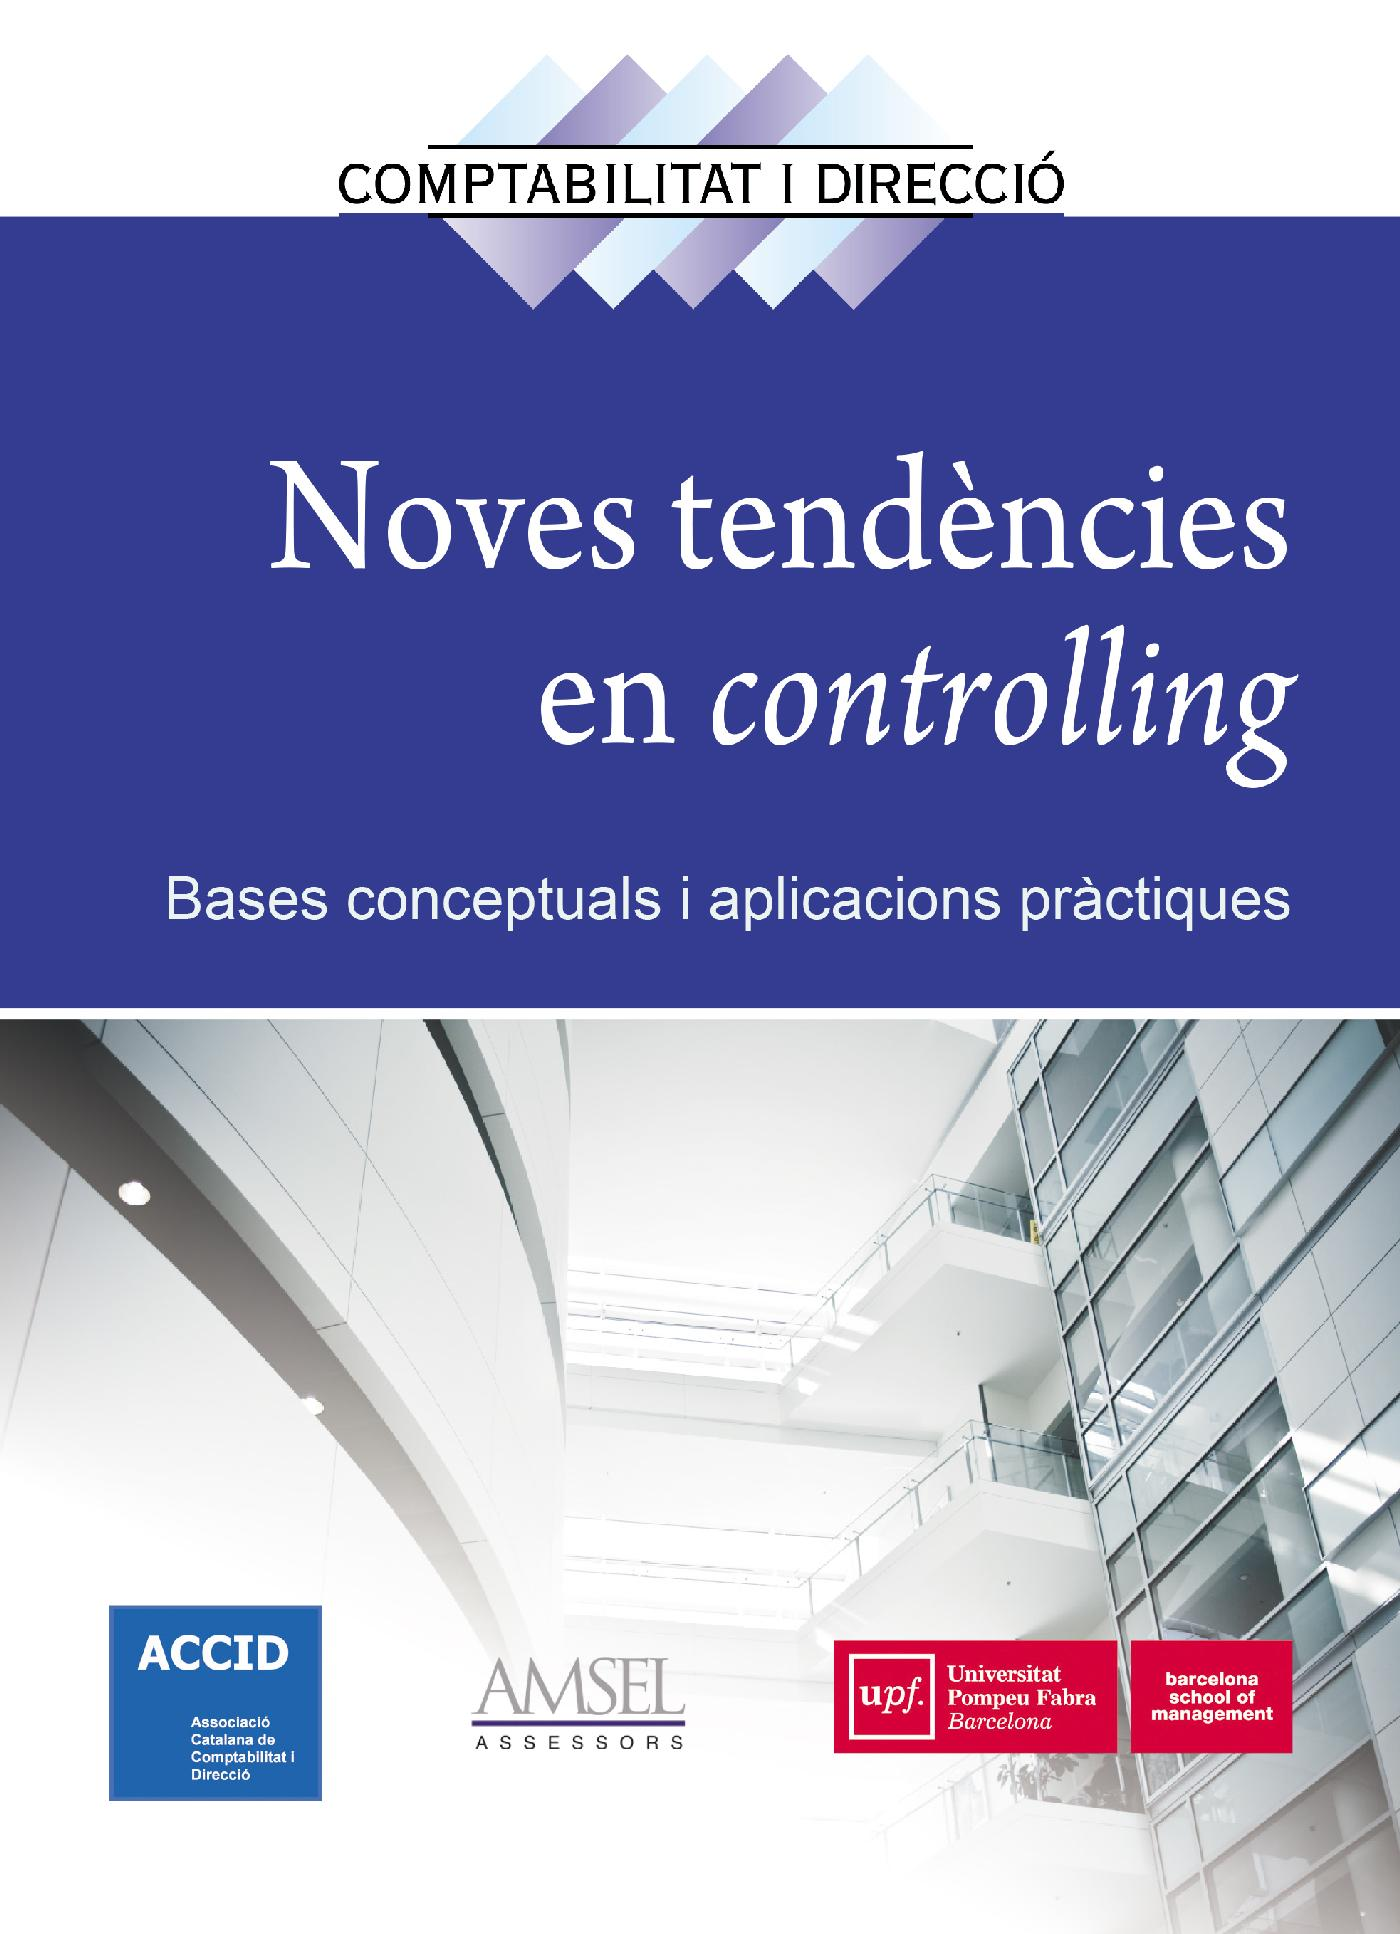 NOVES TENDENCIES EN CONTROLLING